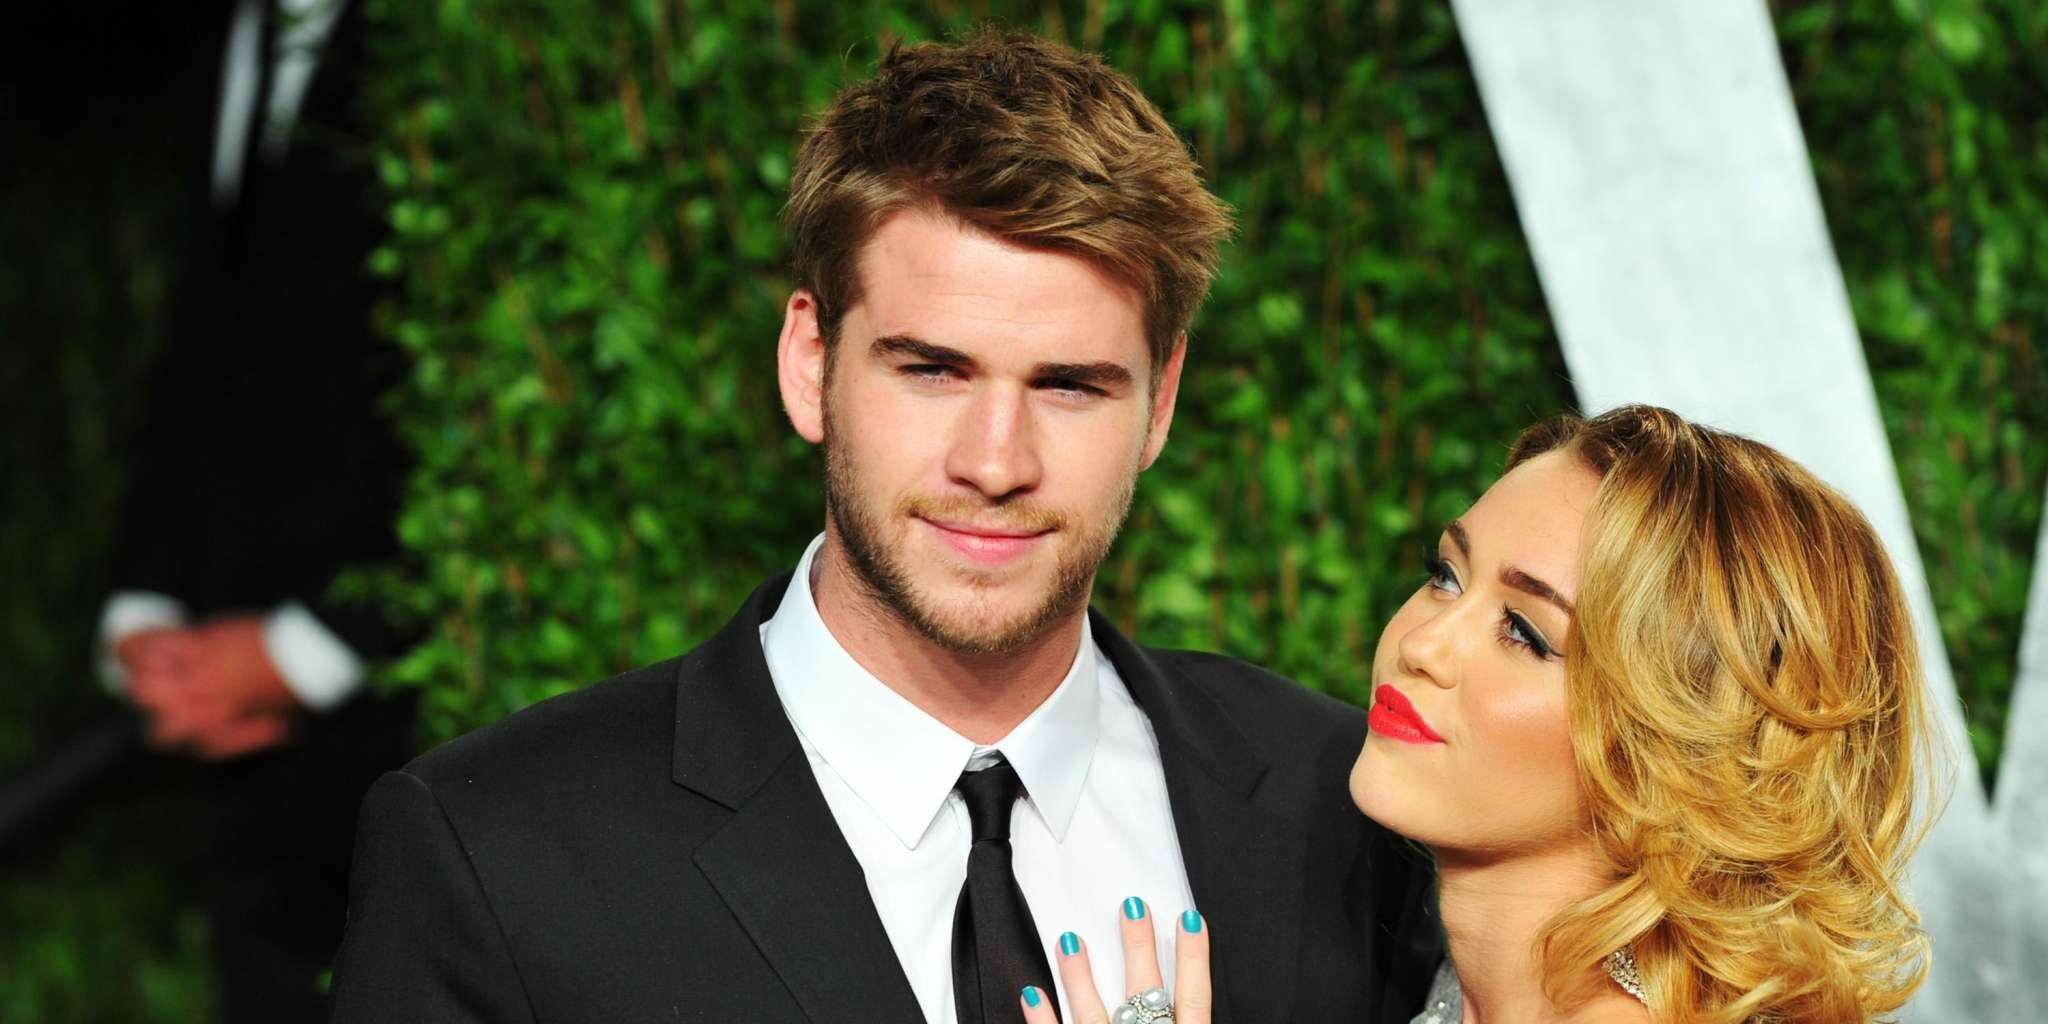 Miley Cyrus Confirms Marriage With Liam Hemsworth - Shares Stunning Wedding Pics!